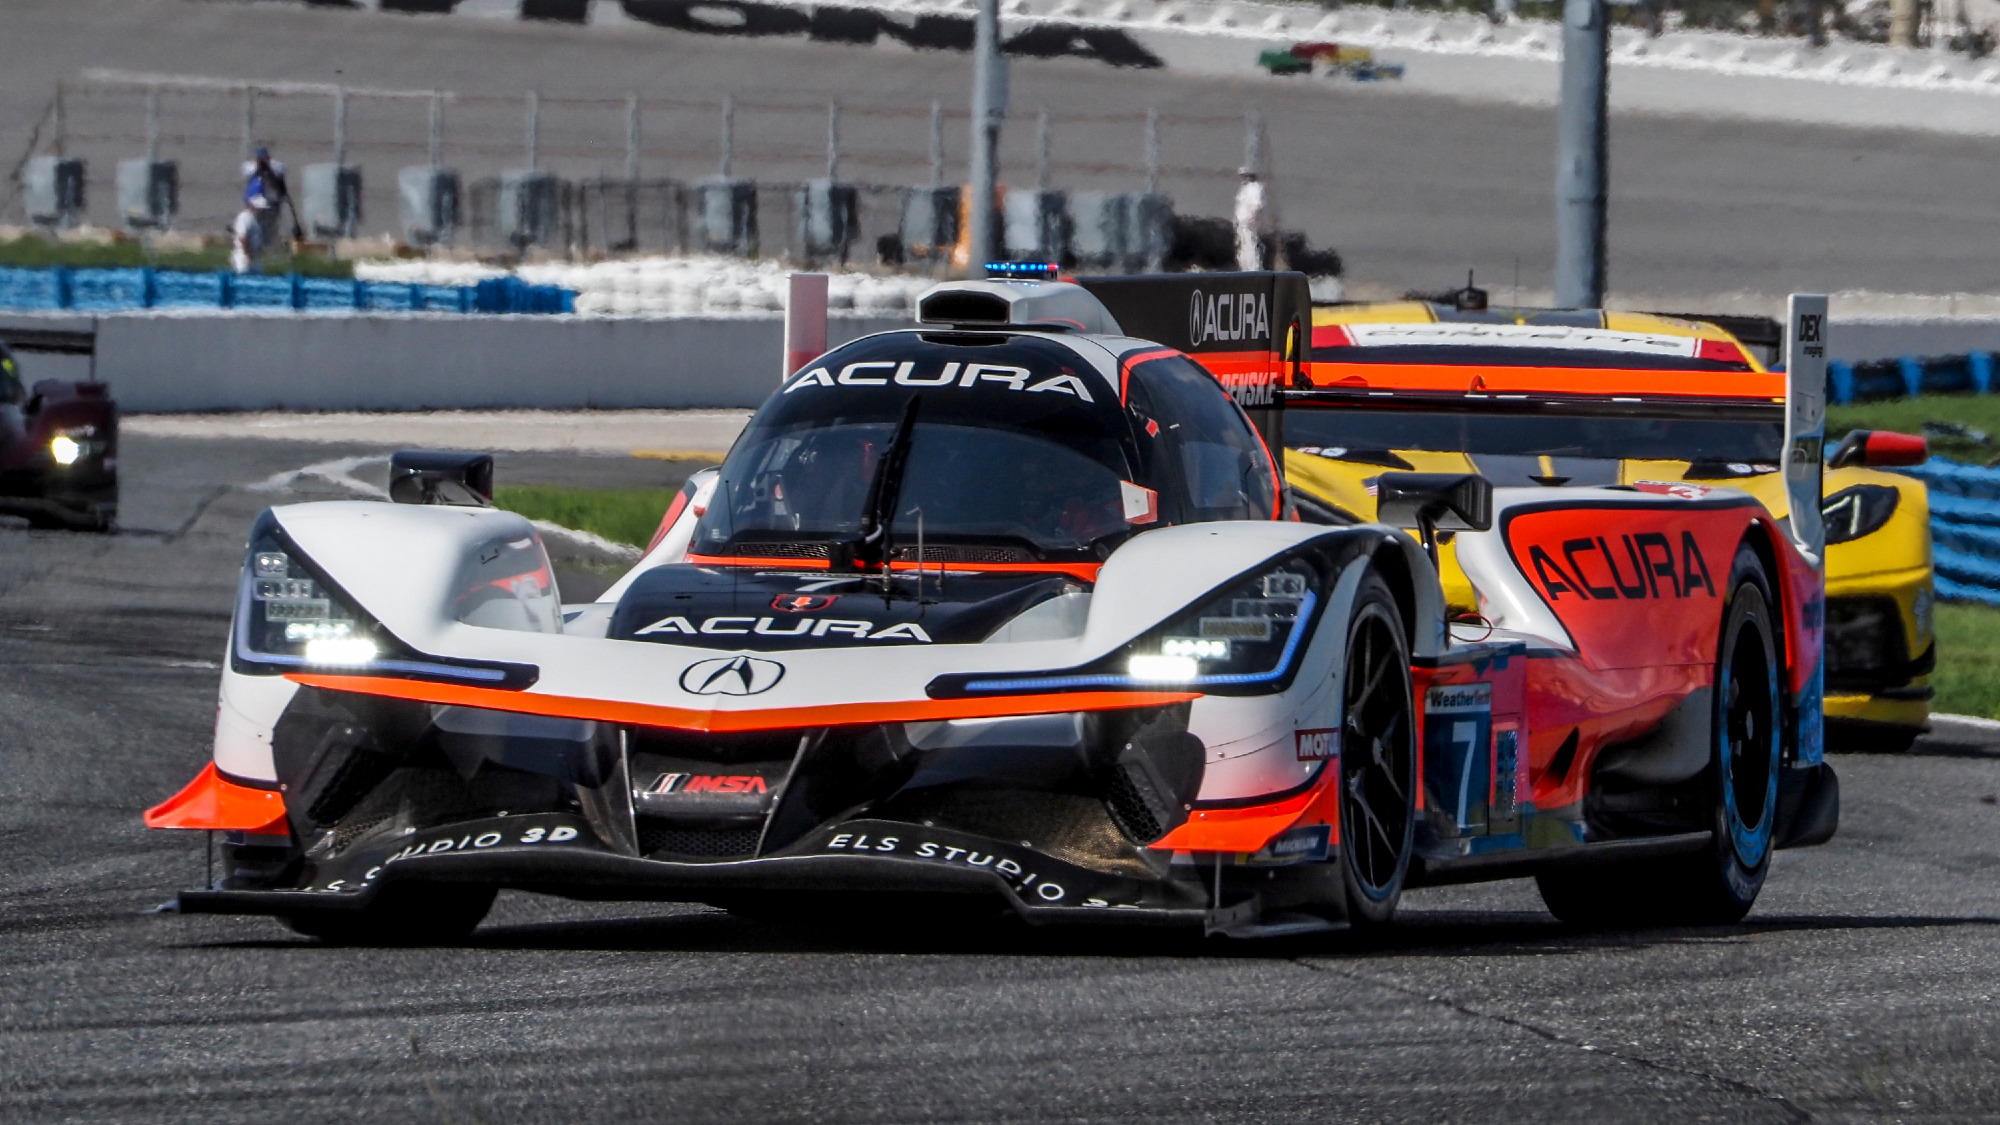 Acura to develop LMDh prototype for 2023 IMSA WeatherTech season